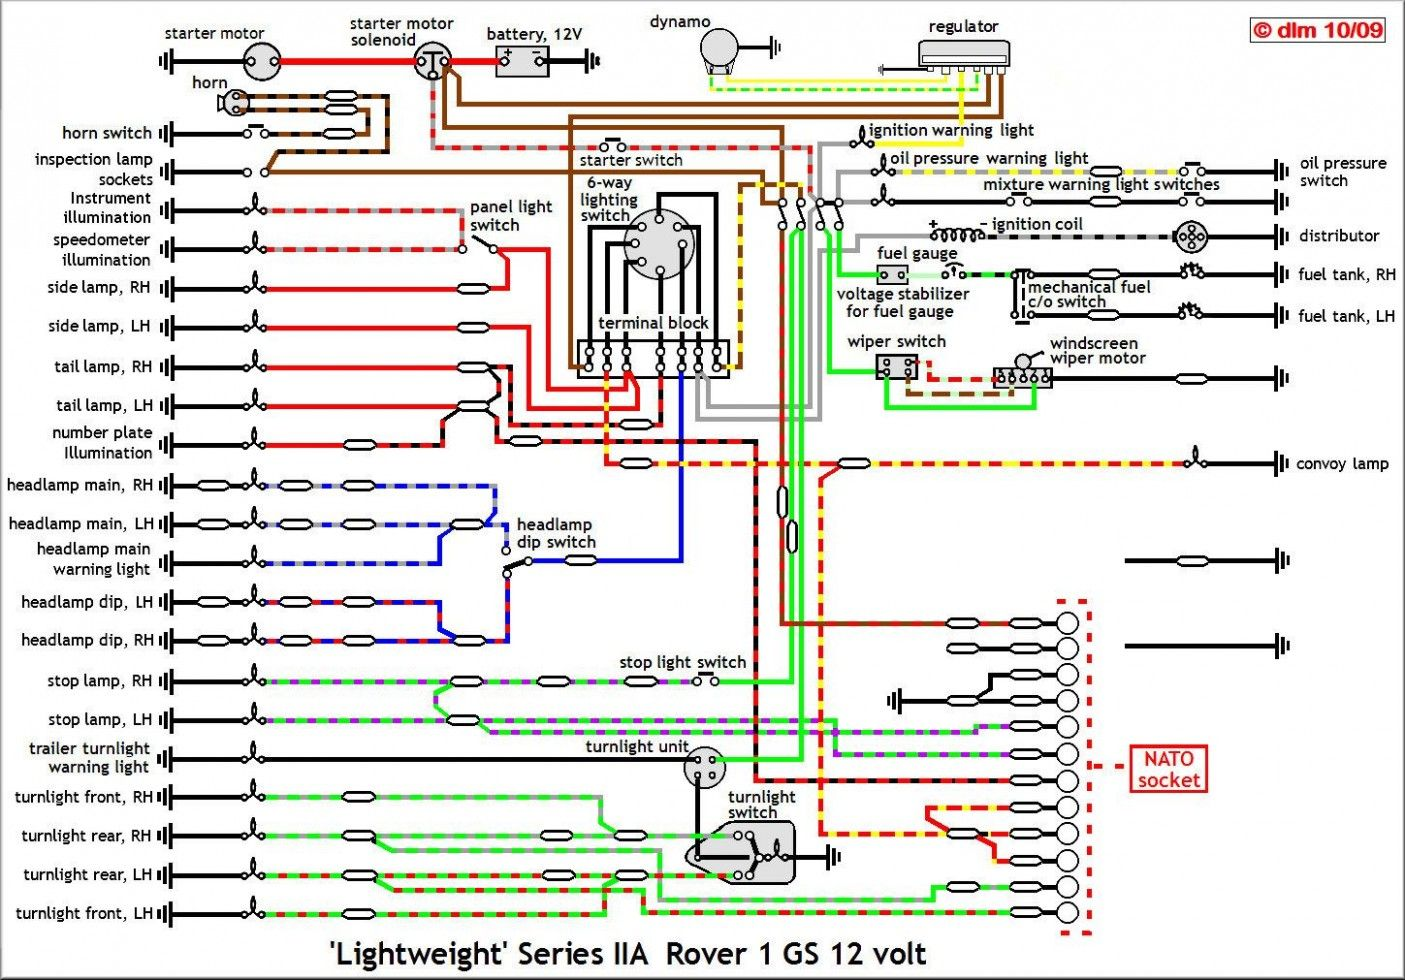 Engine Diagram Range Rover Sport Yamaha Engine Diagram Range Rover Sport Yamaha